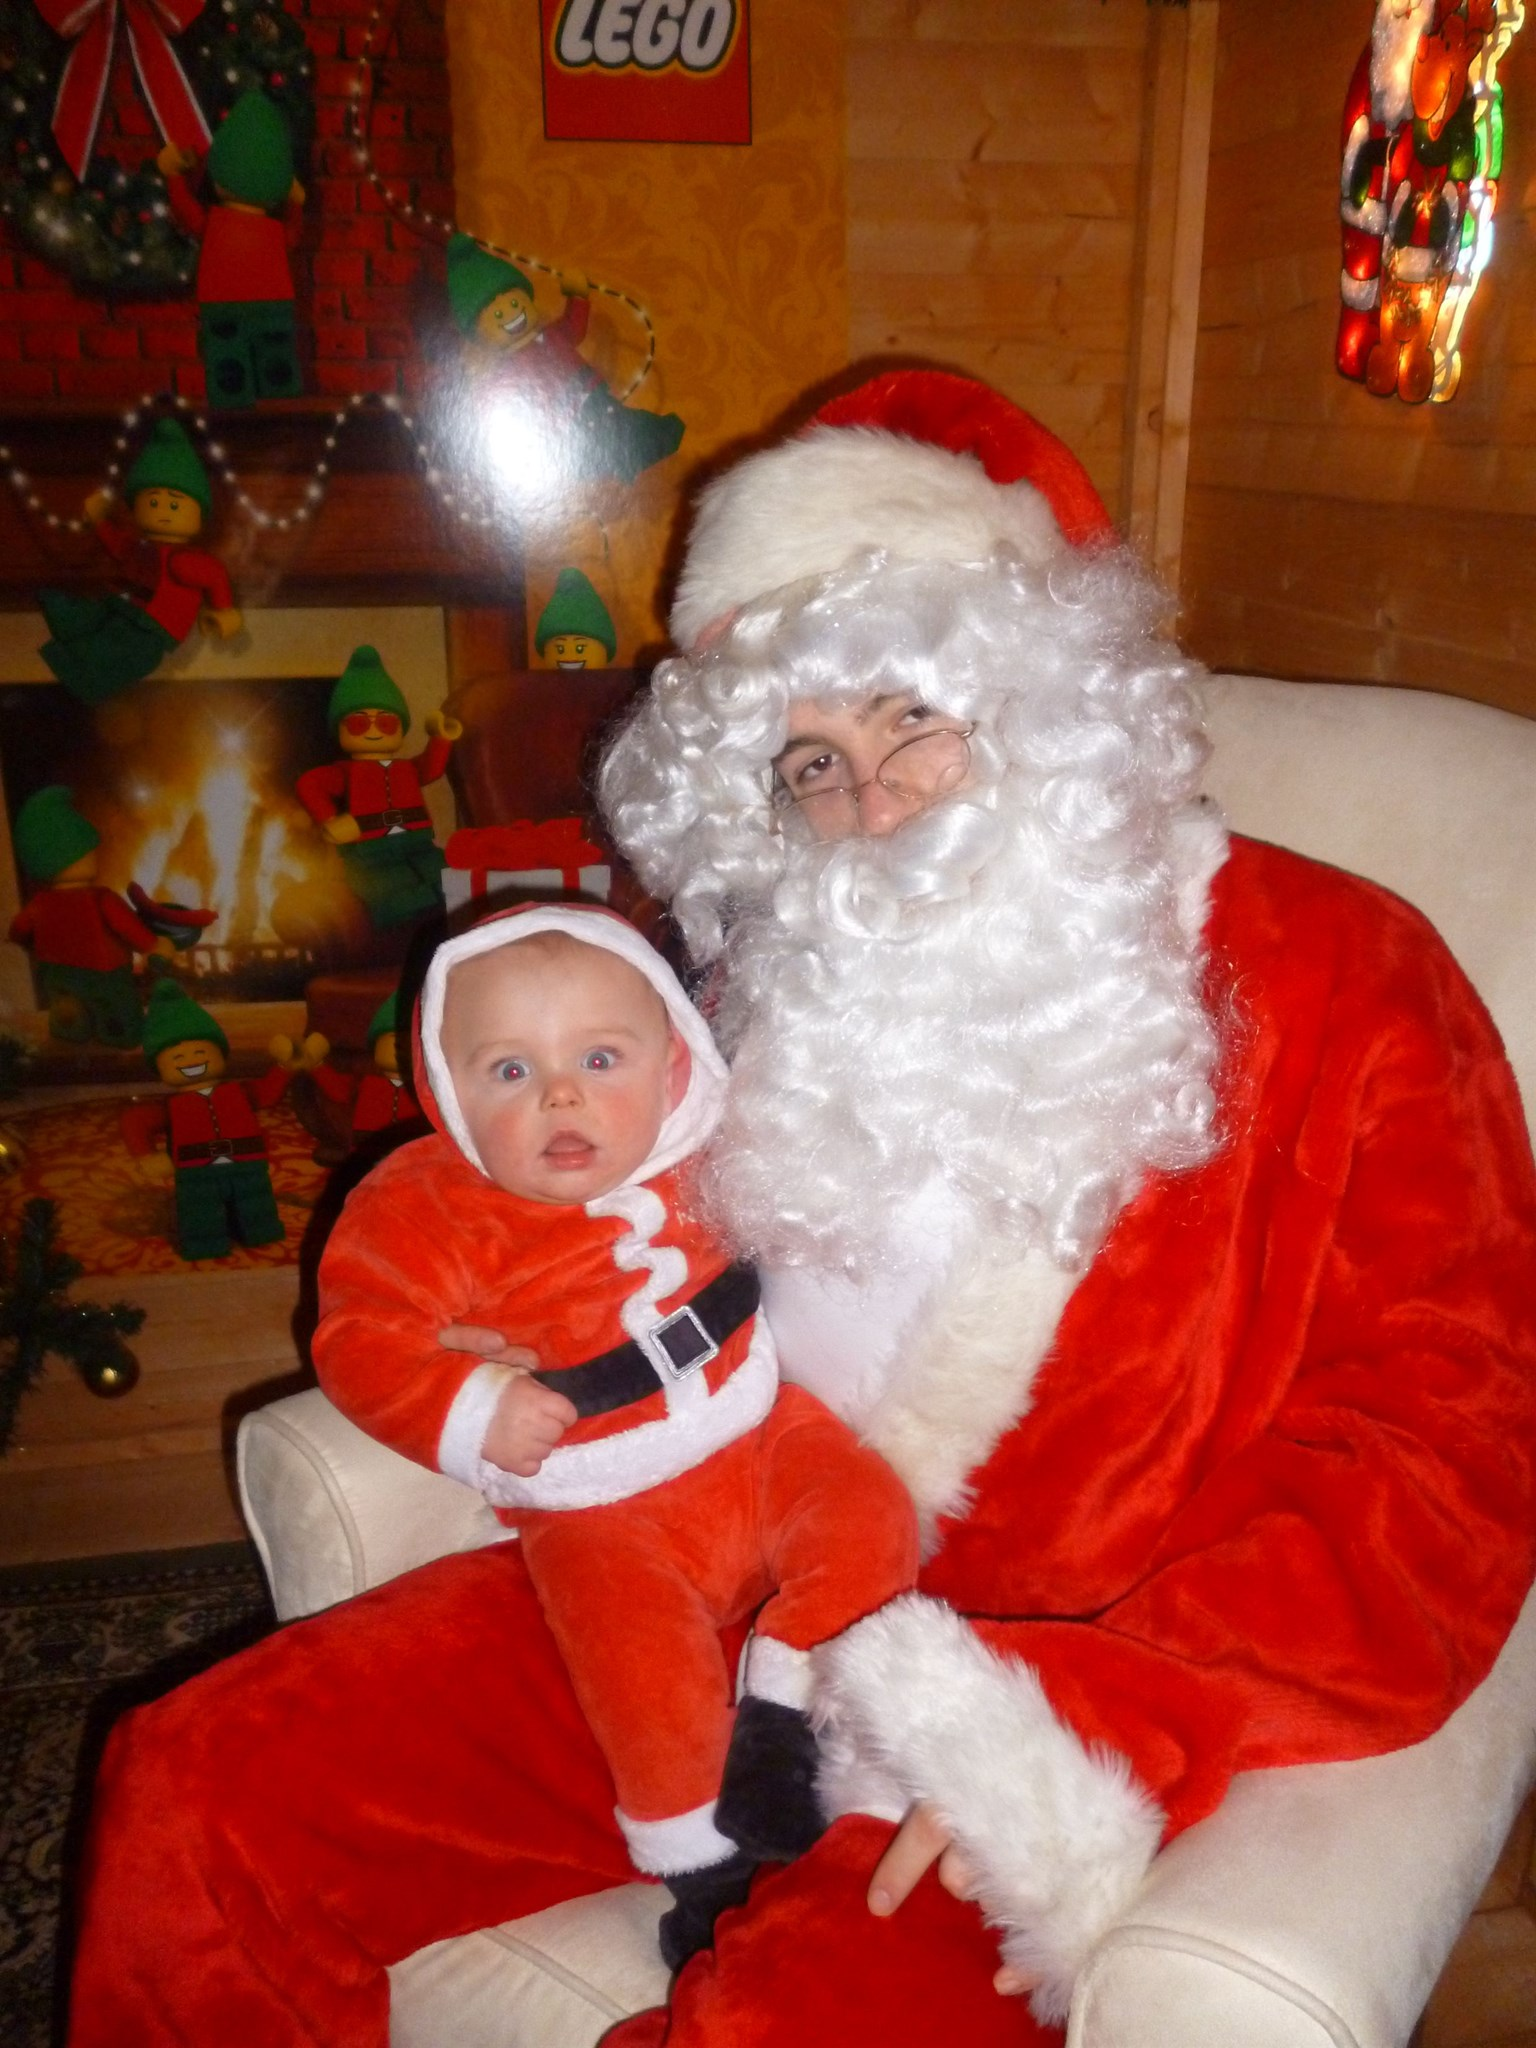 visiting santa for the 1st time